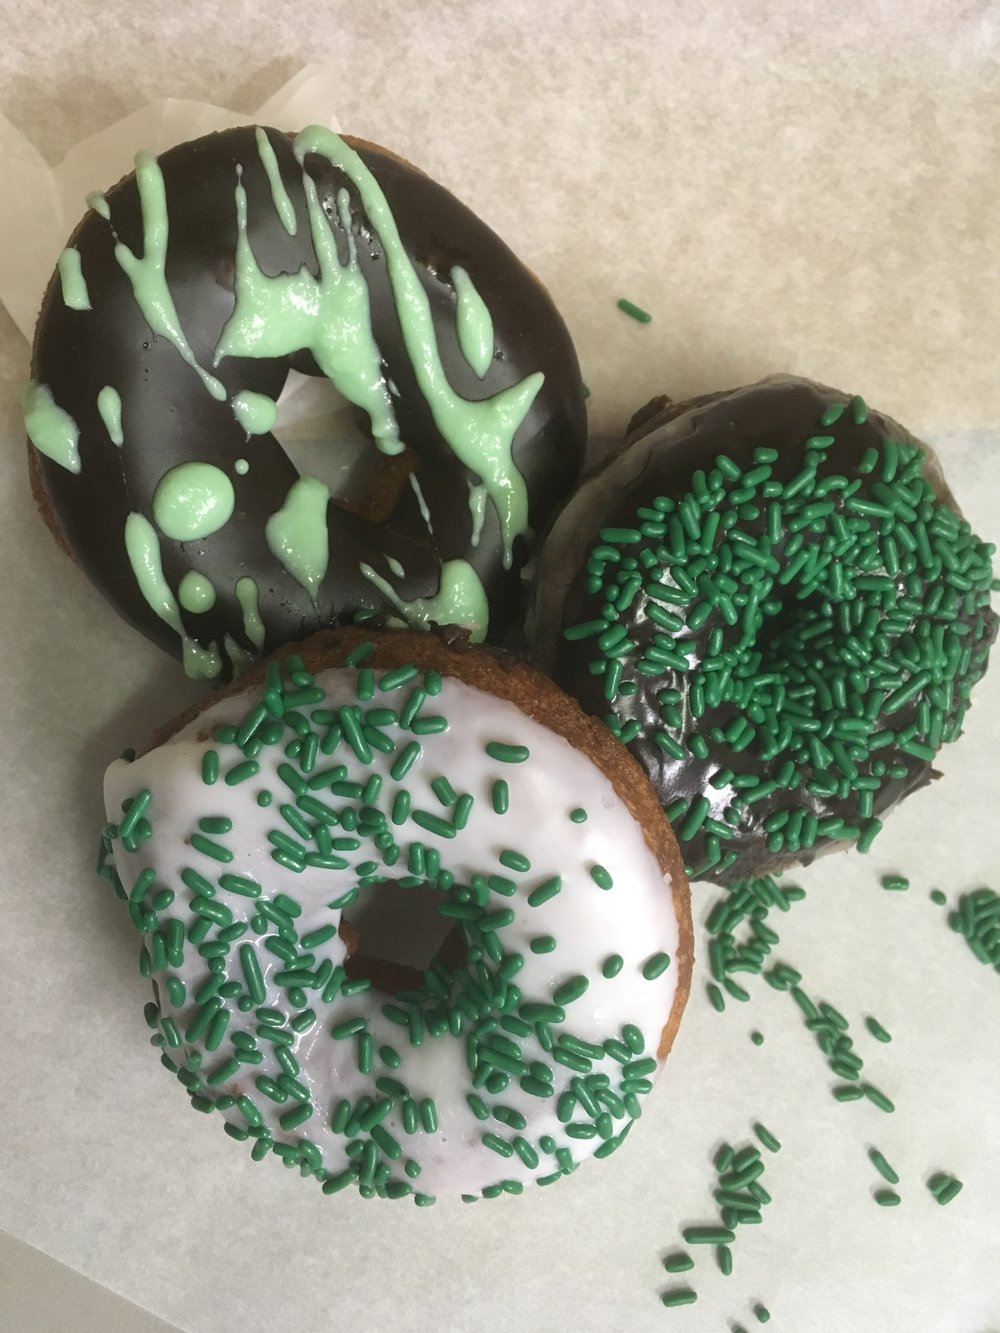 St. Patty's Day Special       Available March 15-18 Only! - Green is the Theme!Sweet is the Treat!Pre Order Today!